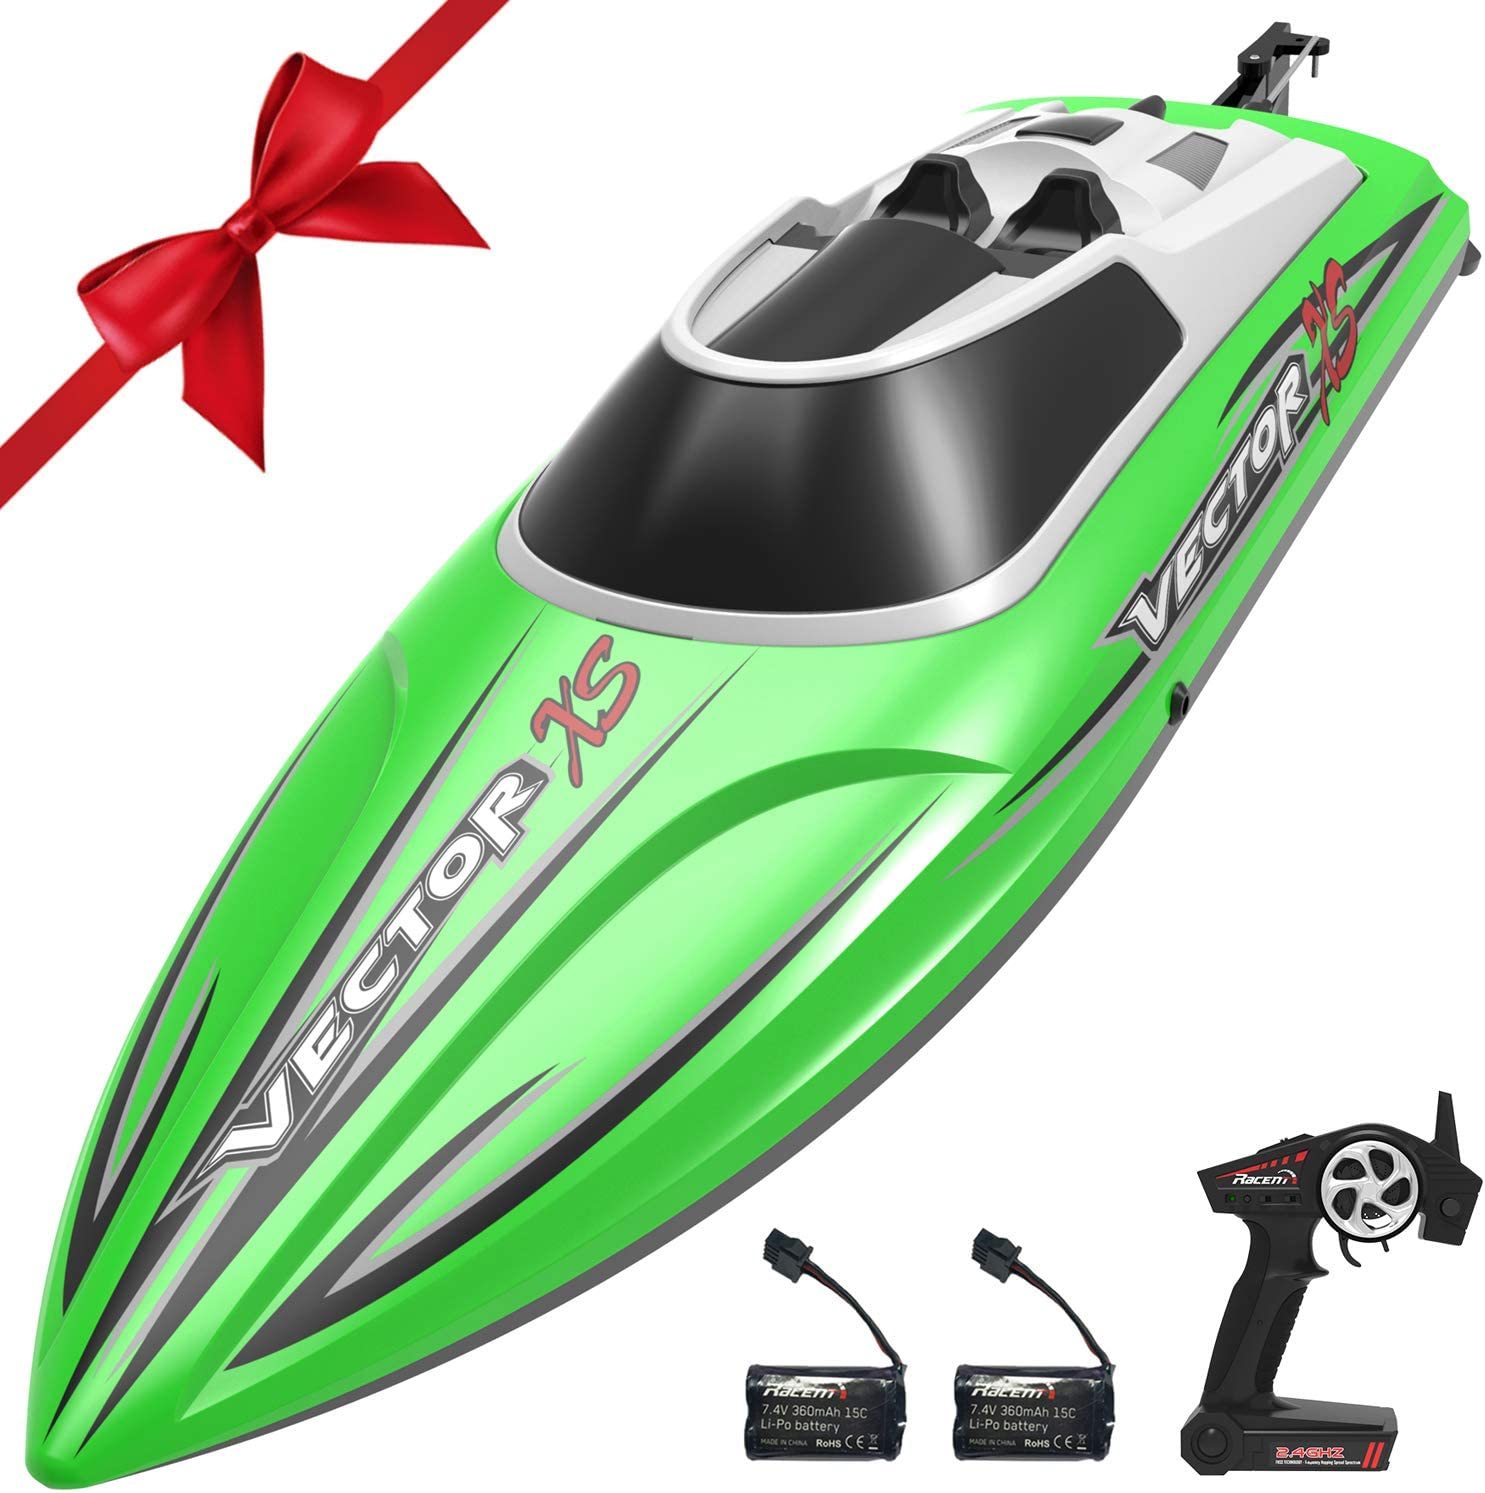 VOLANTEXRC Remote Control Boat RC Boat for Pool and Lakes, 20MPH High Speed RC Boat VectorXS with Self-righting Feature, Reverse Function for Kids or Adults (795-4 Green)